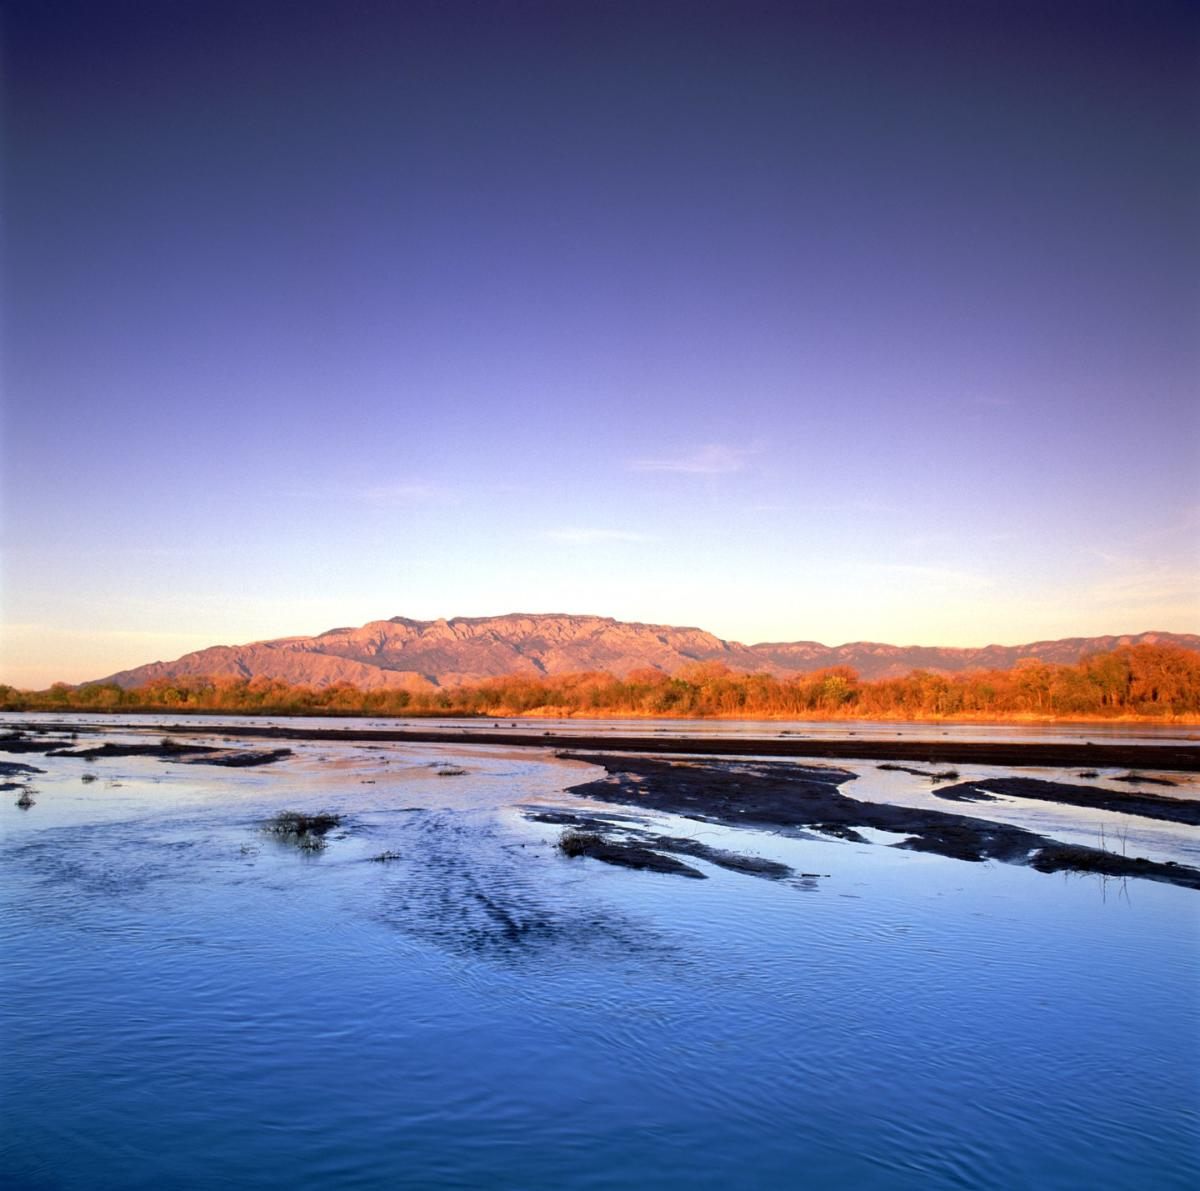 A view of the Sandia Mountains from the Rio Grande Bosque.